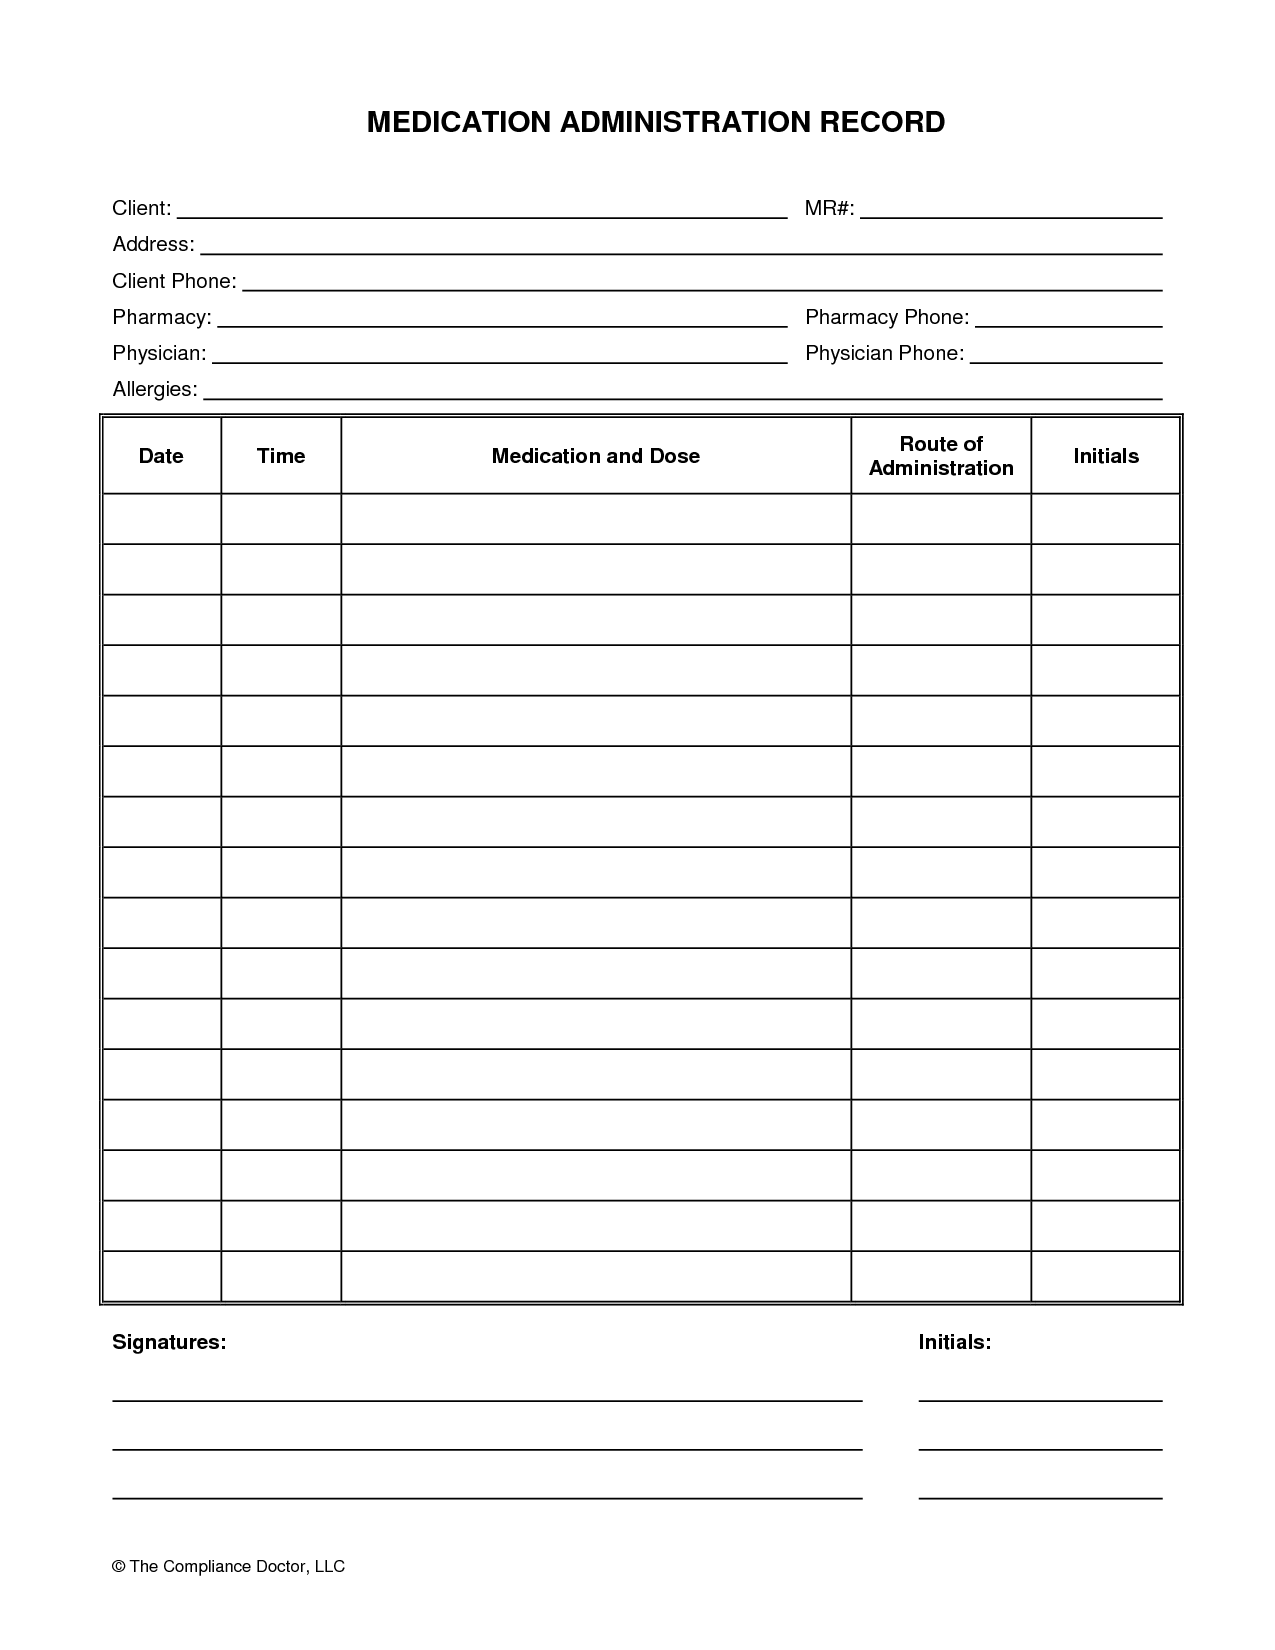 Medication Administration Record Form  Med Organizations